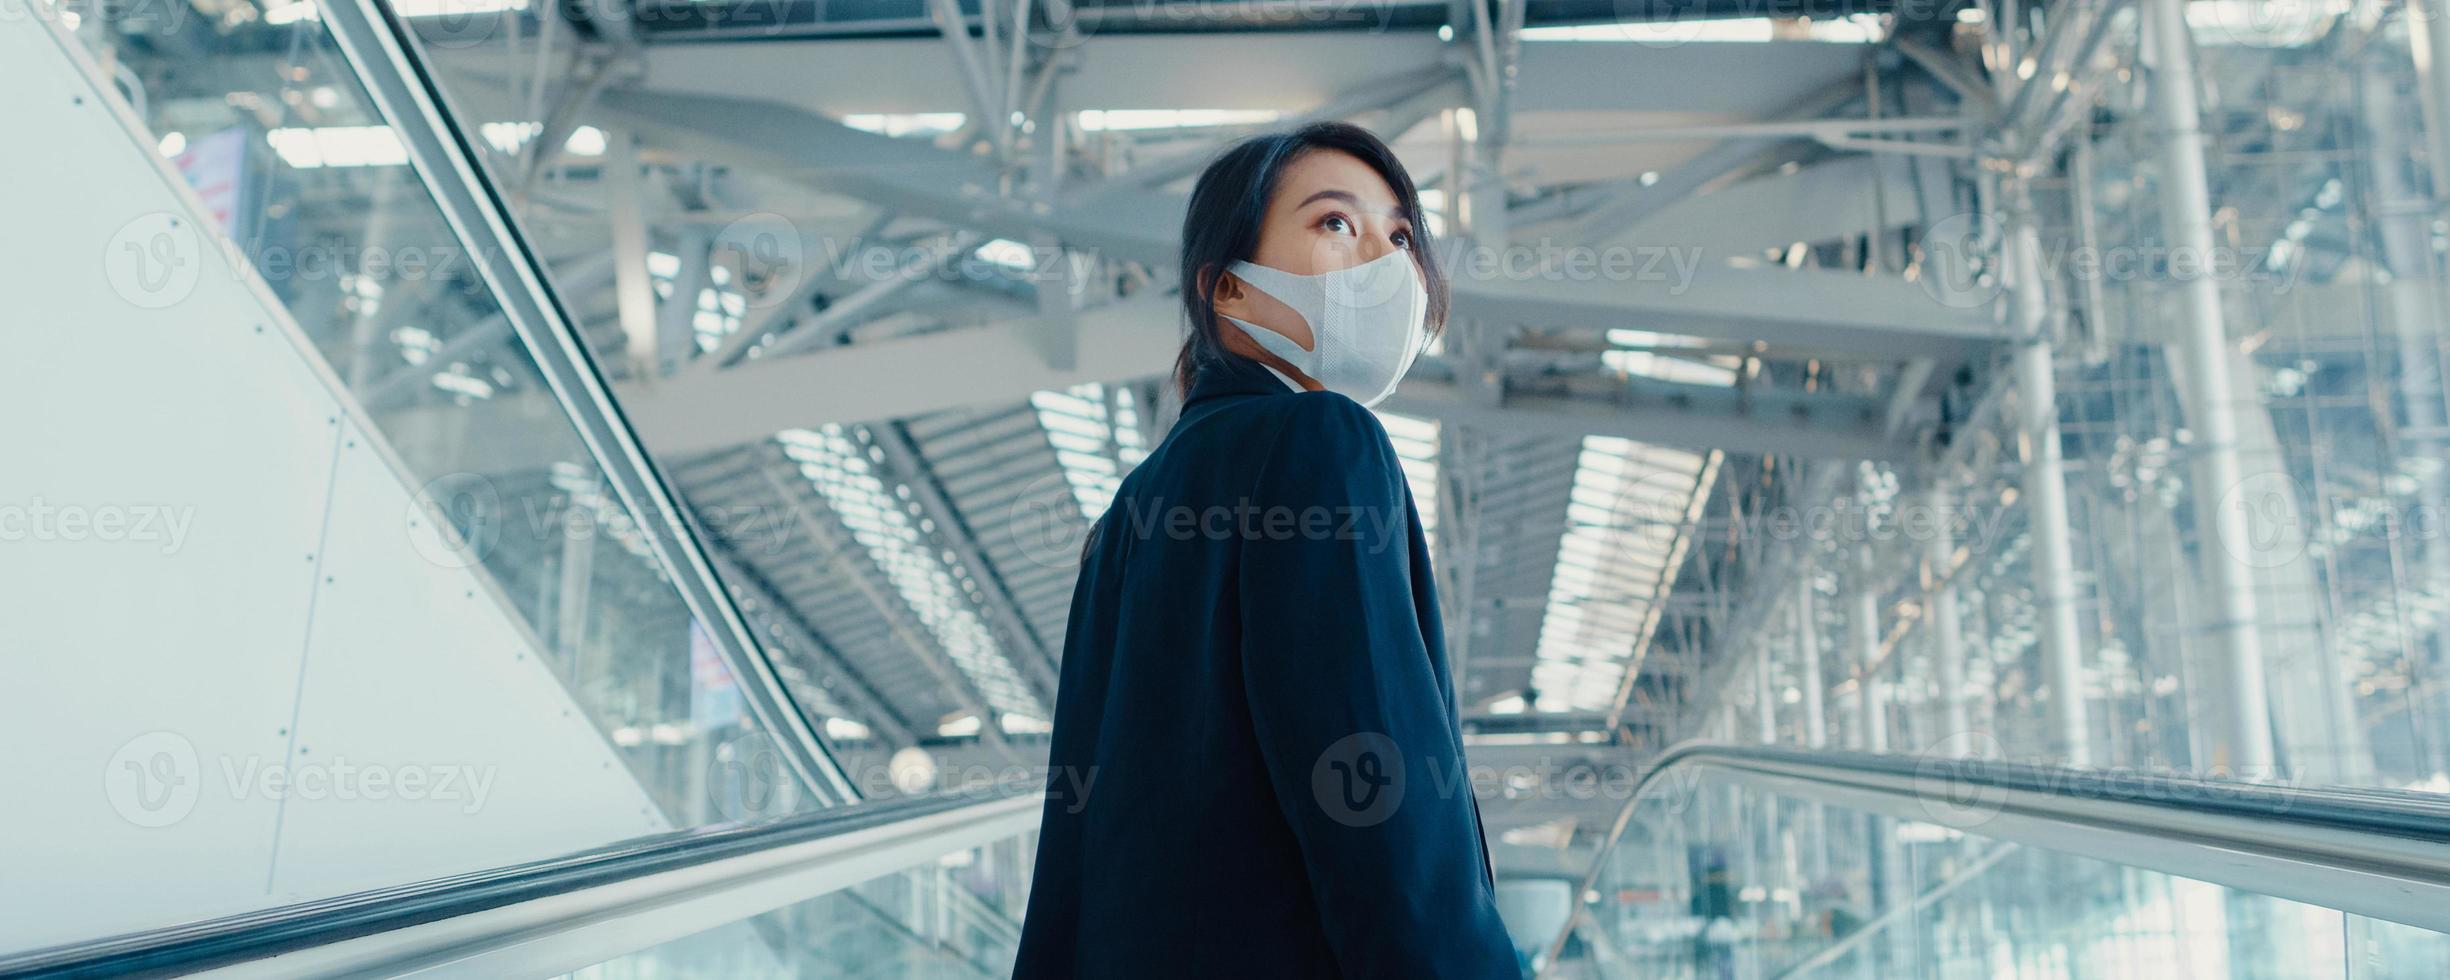 Asian business girl wear face mask drag luggage stand on escalator look around walk to terminal at international airport. Business travel social distancing concept. Panoramic banner background. photo